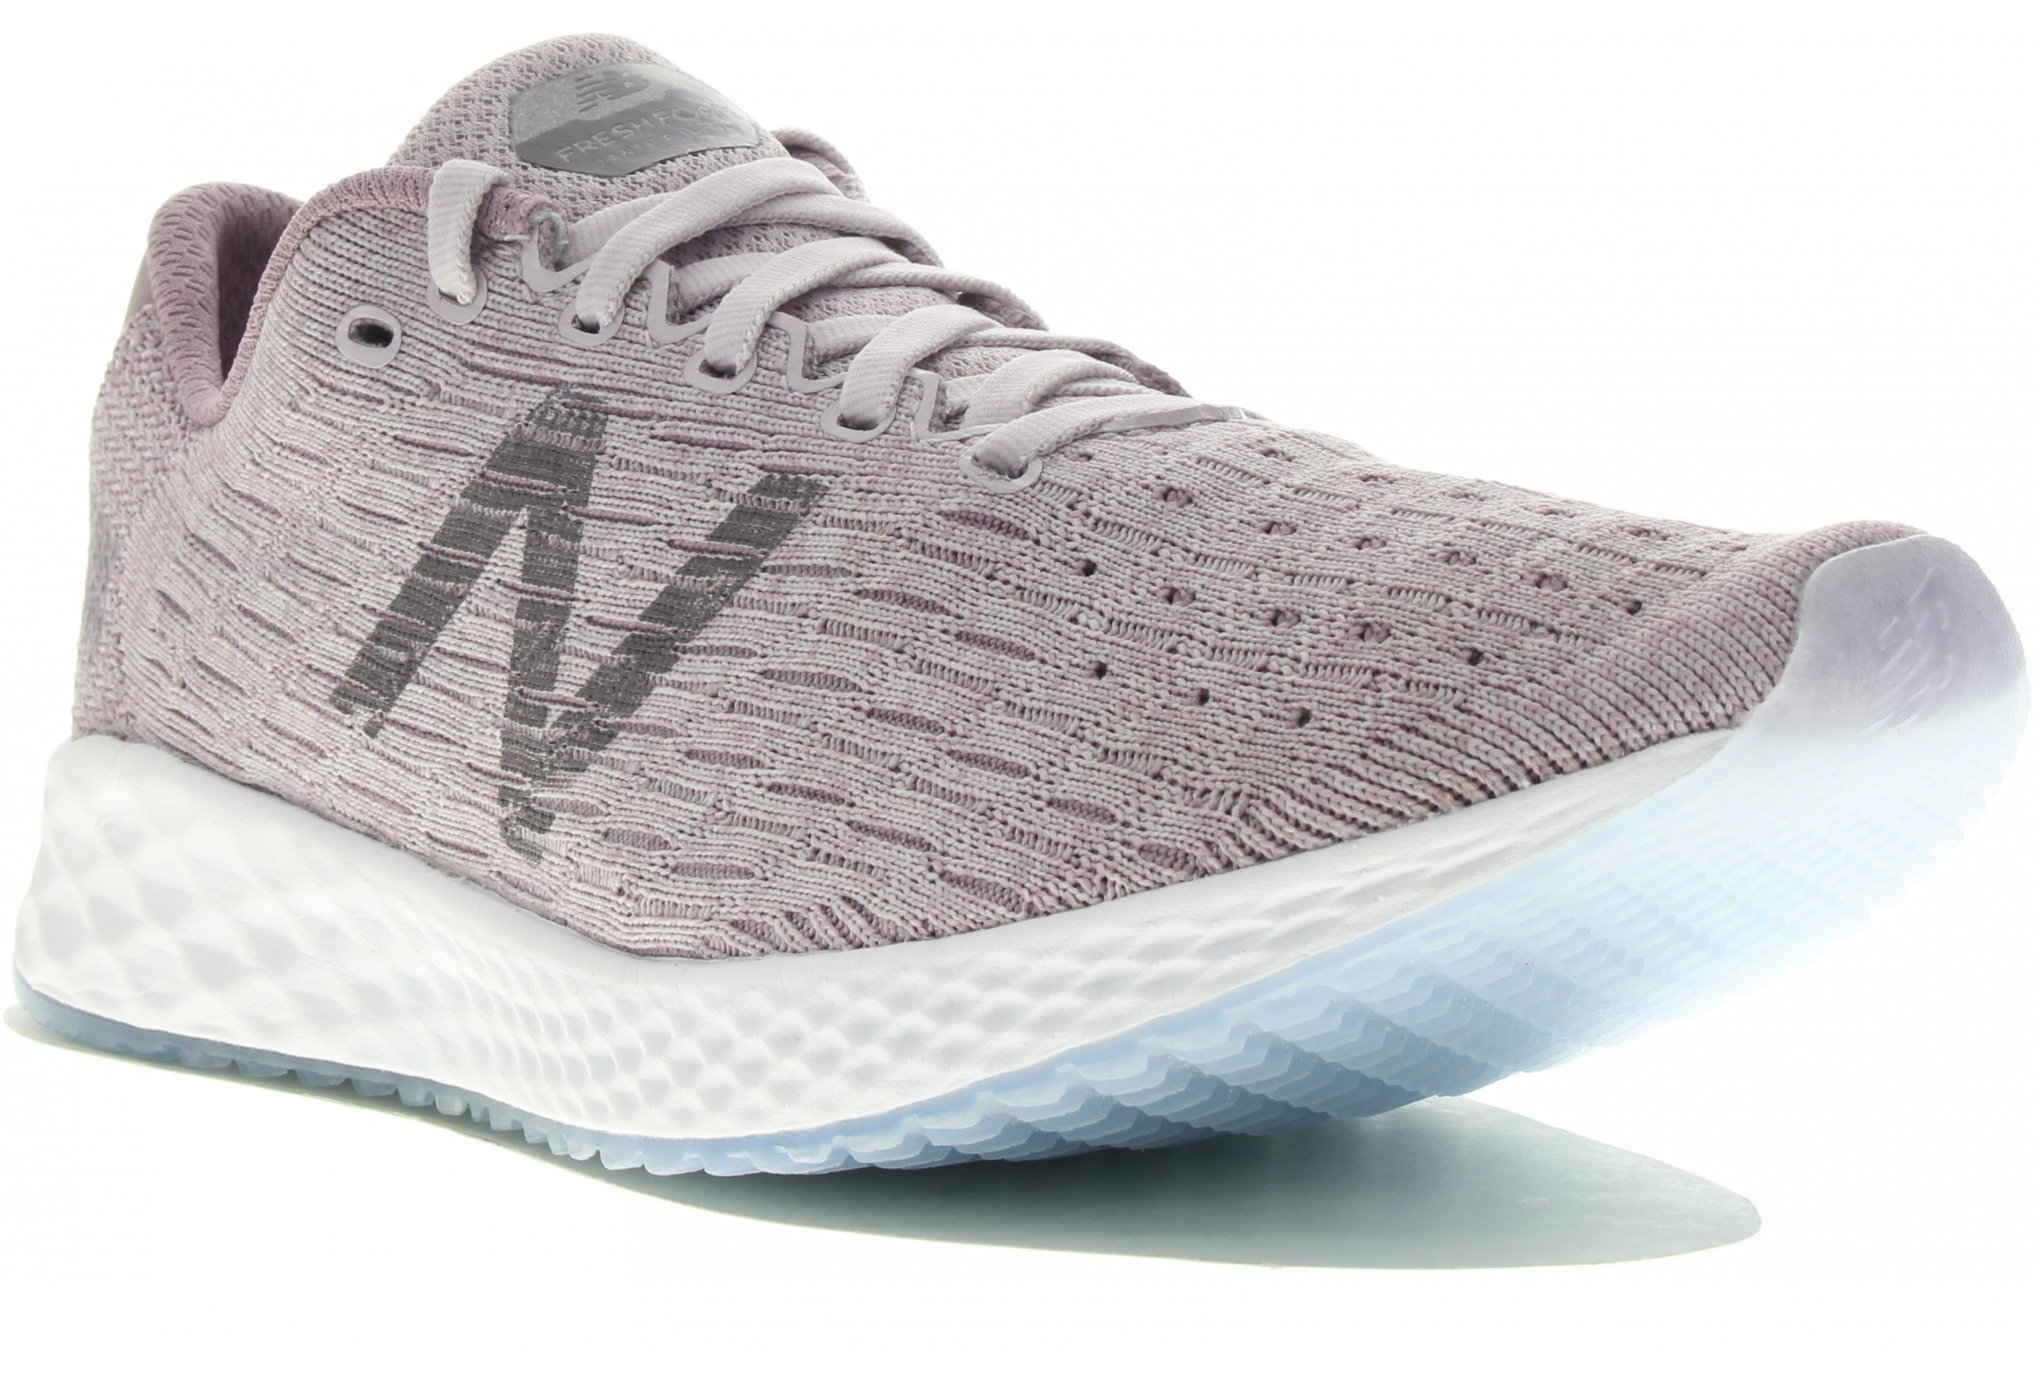 New Balance Fresh Foam Zante Pursuit Chaussures running femme